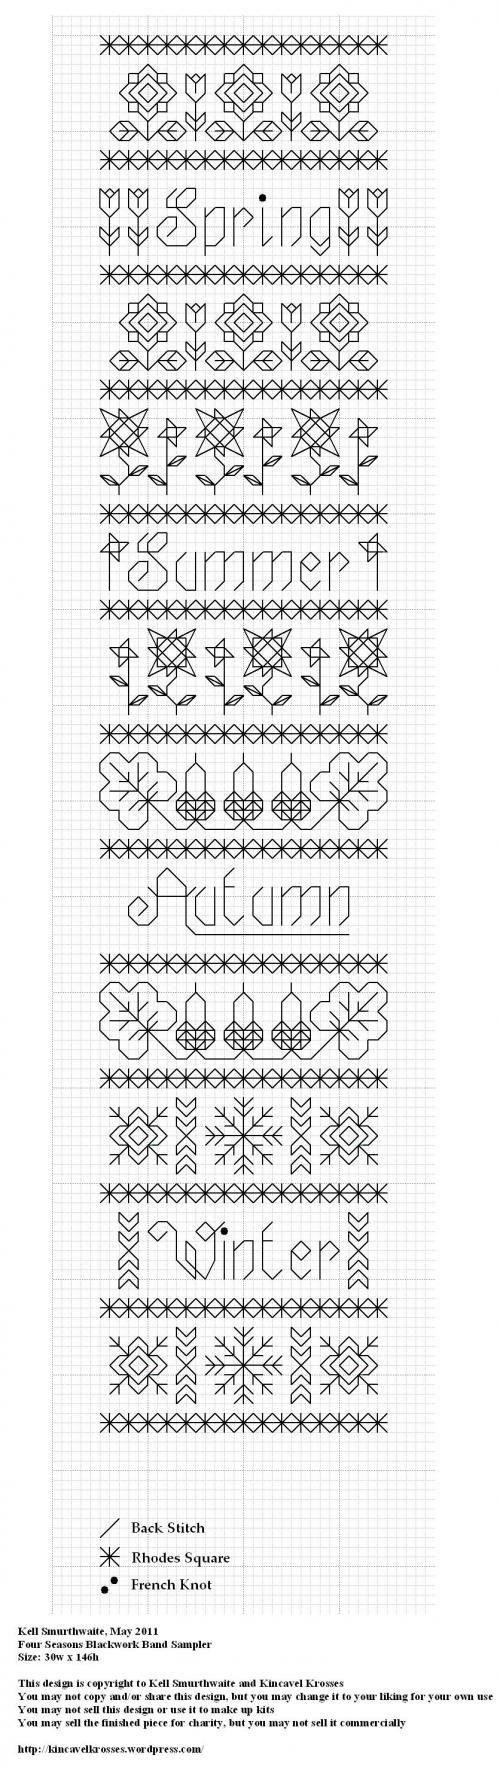 Four Seasons Blackwork Band Sampler. {jrs: All or Part Might be pretty on Gingham in chicken scratch?}